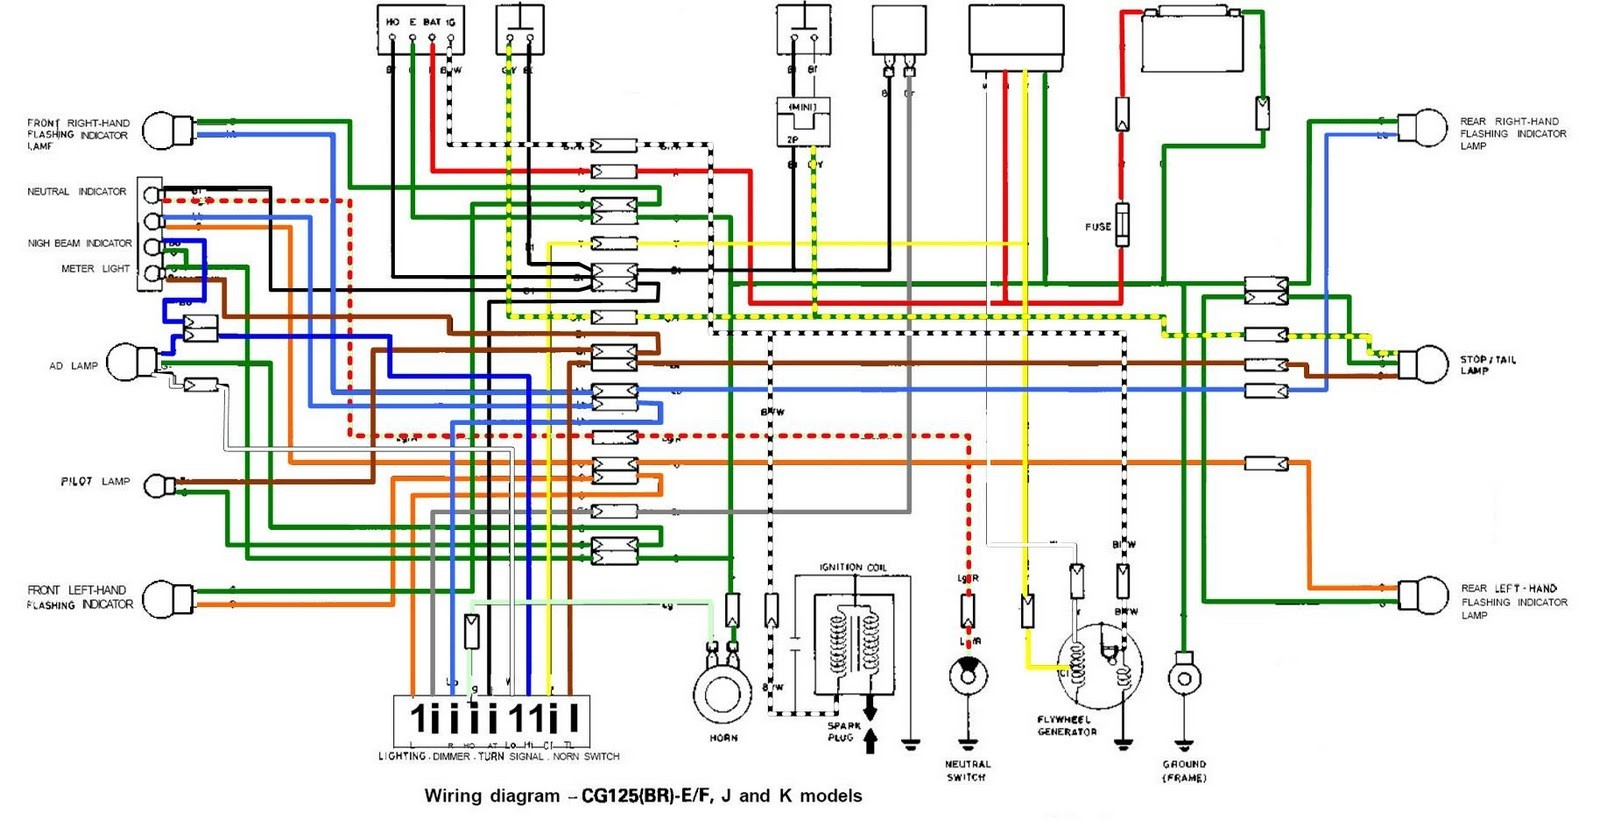 Honda Gx240 Wiring Diagram Electrical Diagrams Gx340 Stationary Engine Diy Enthusiasts Gx390 Parts Wire